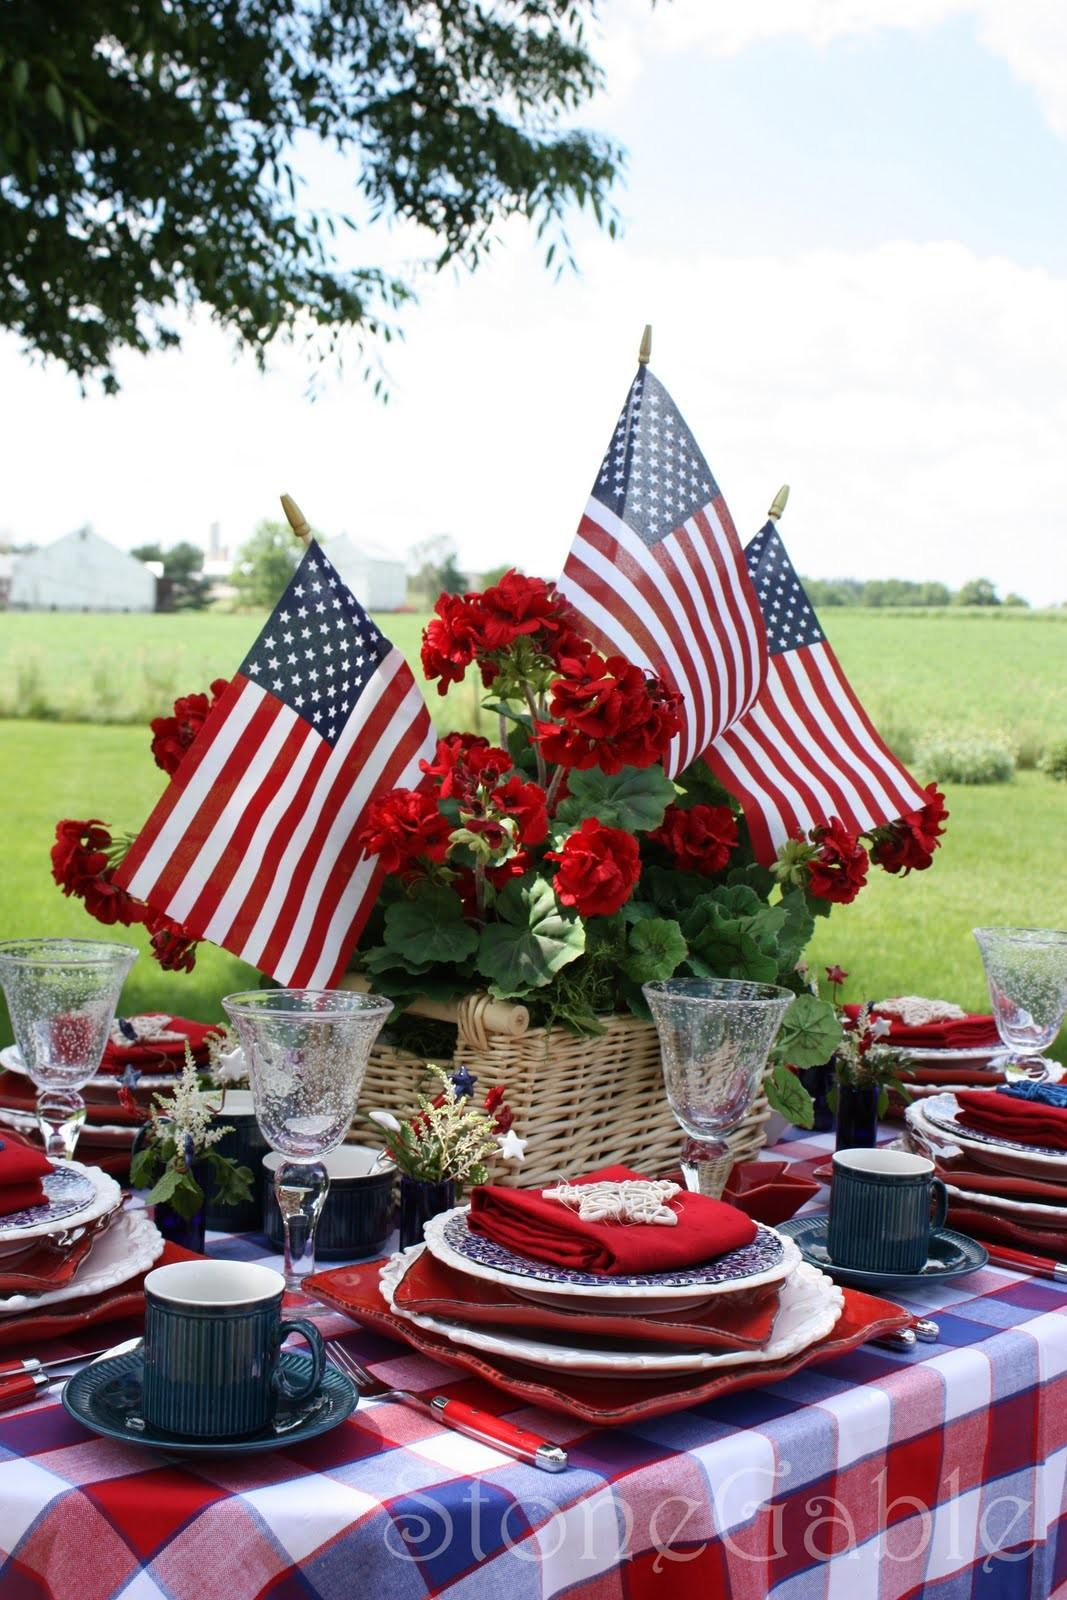 Each Place Setting Mix Red White Blue